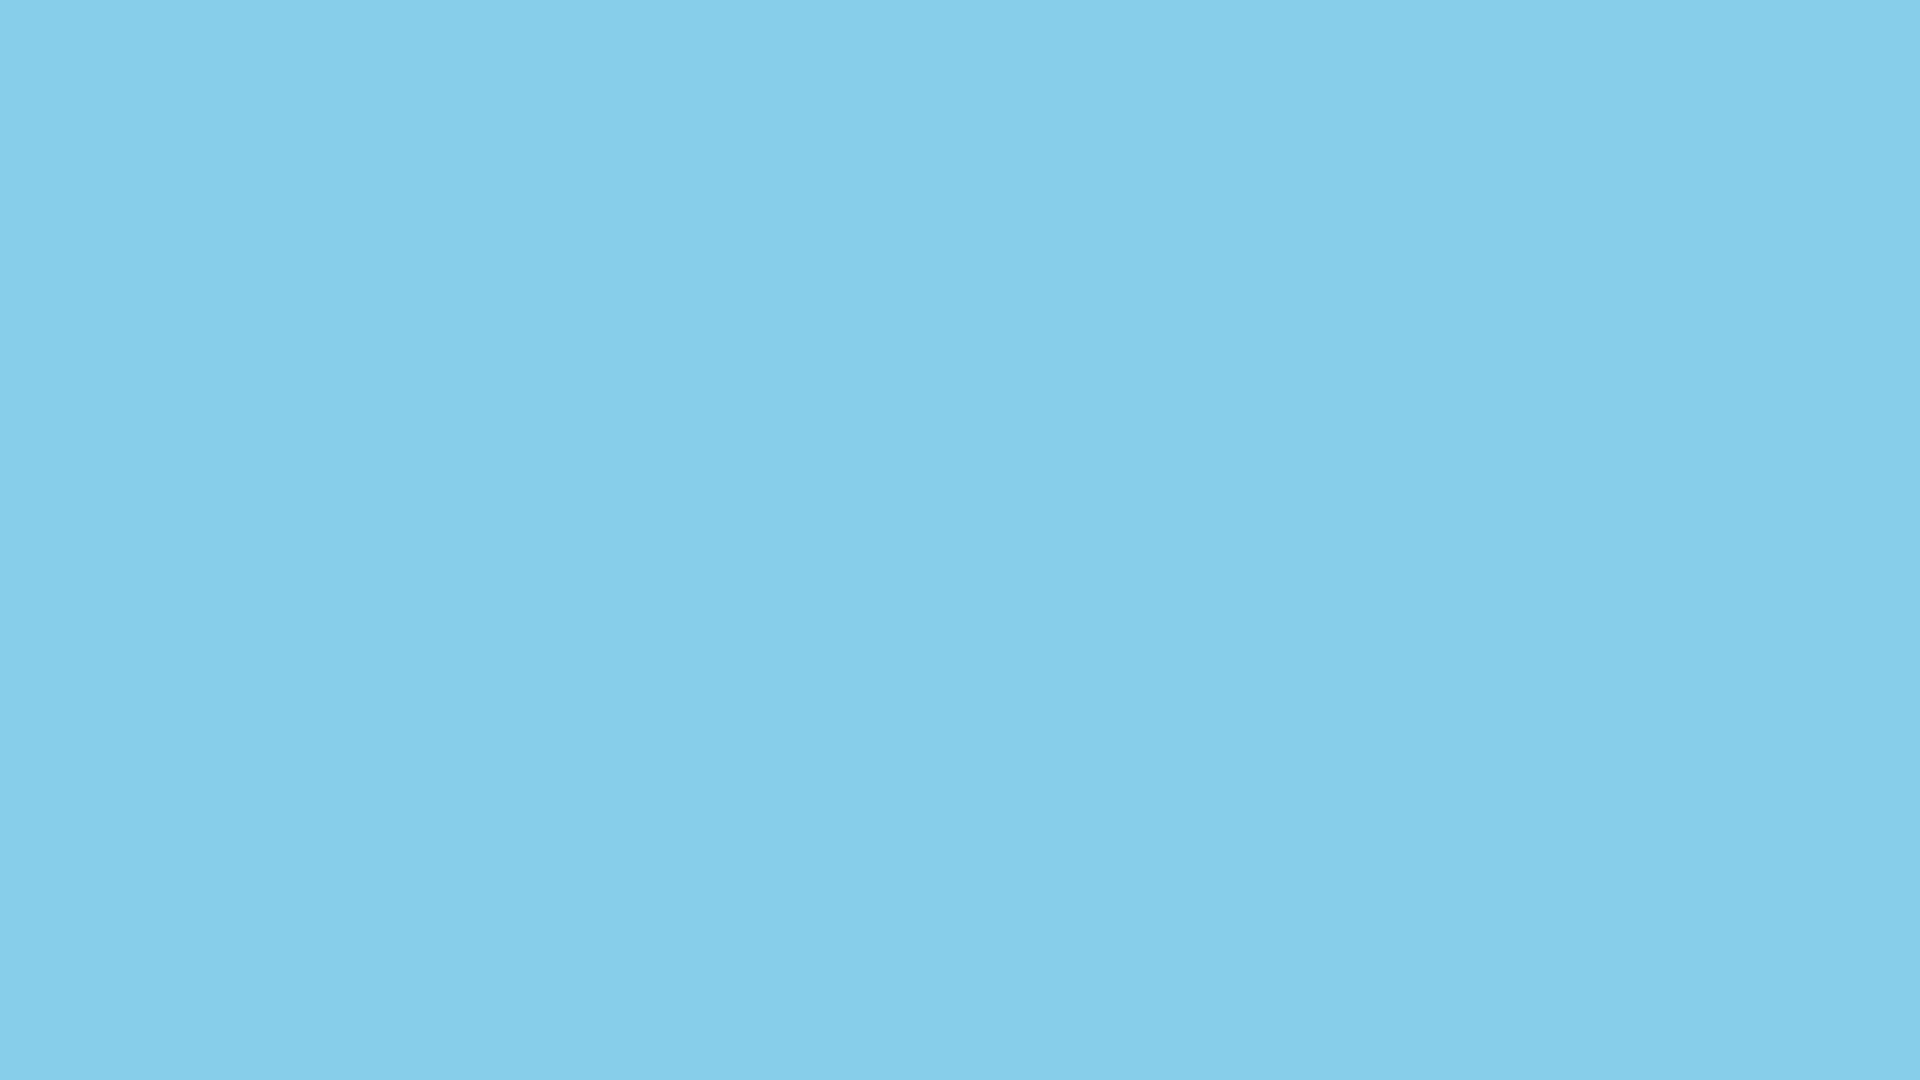 1920x1080 Sky Blue Solid Color Background